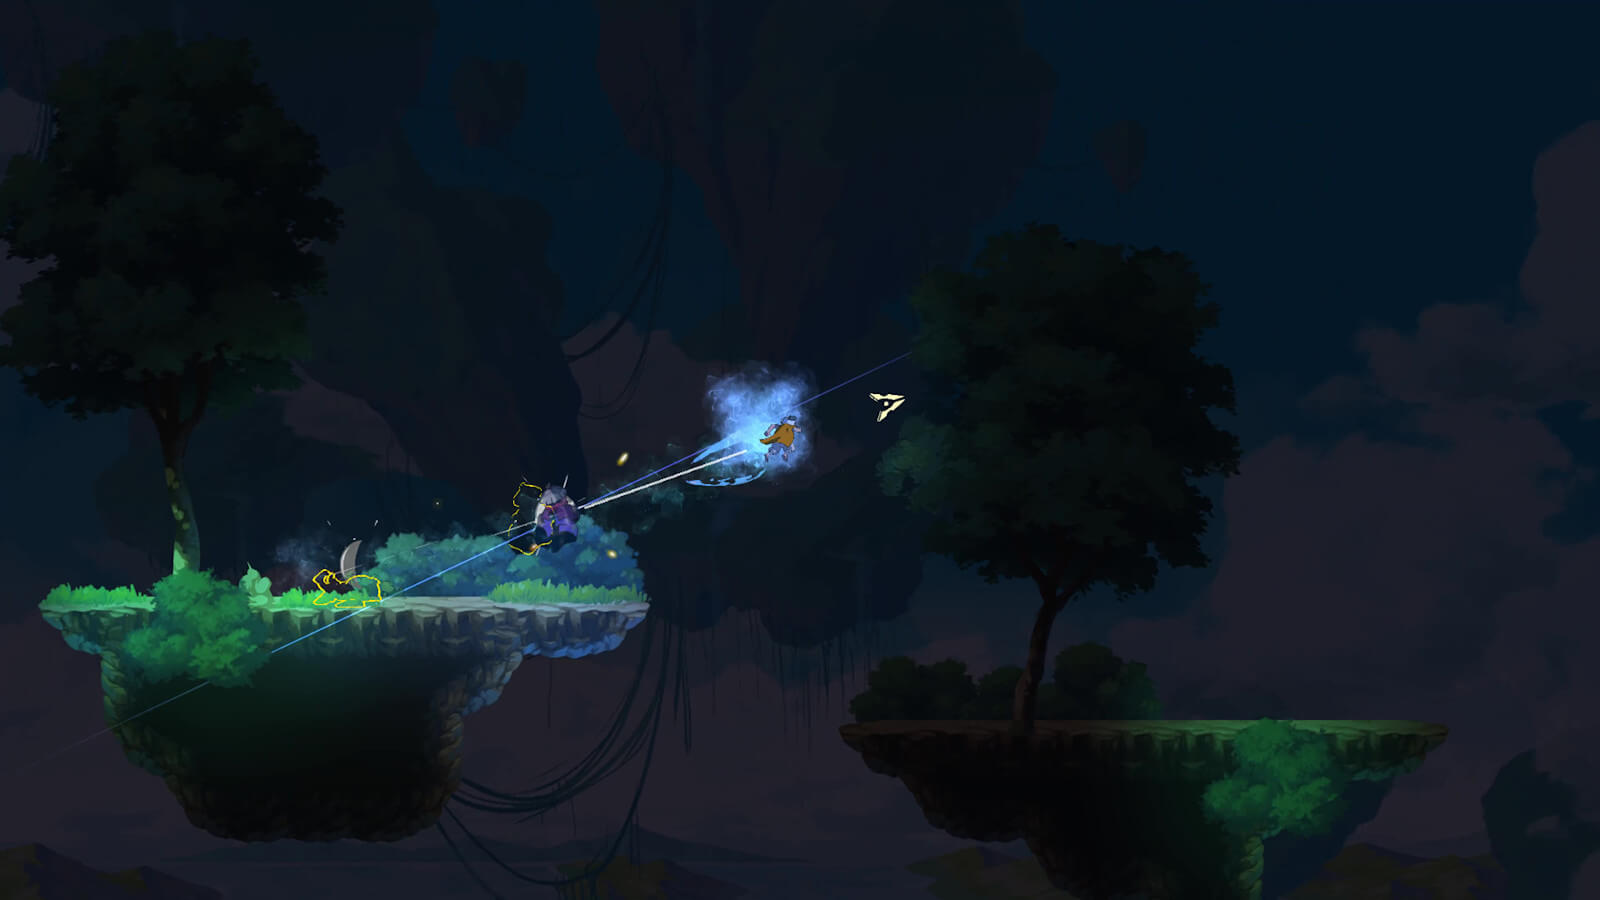 Player character air dashes through a robed enemy